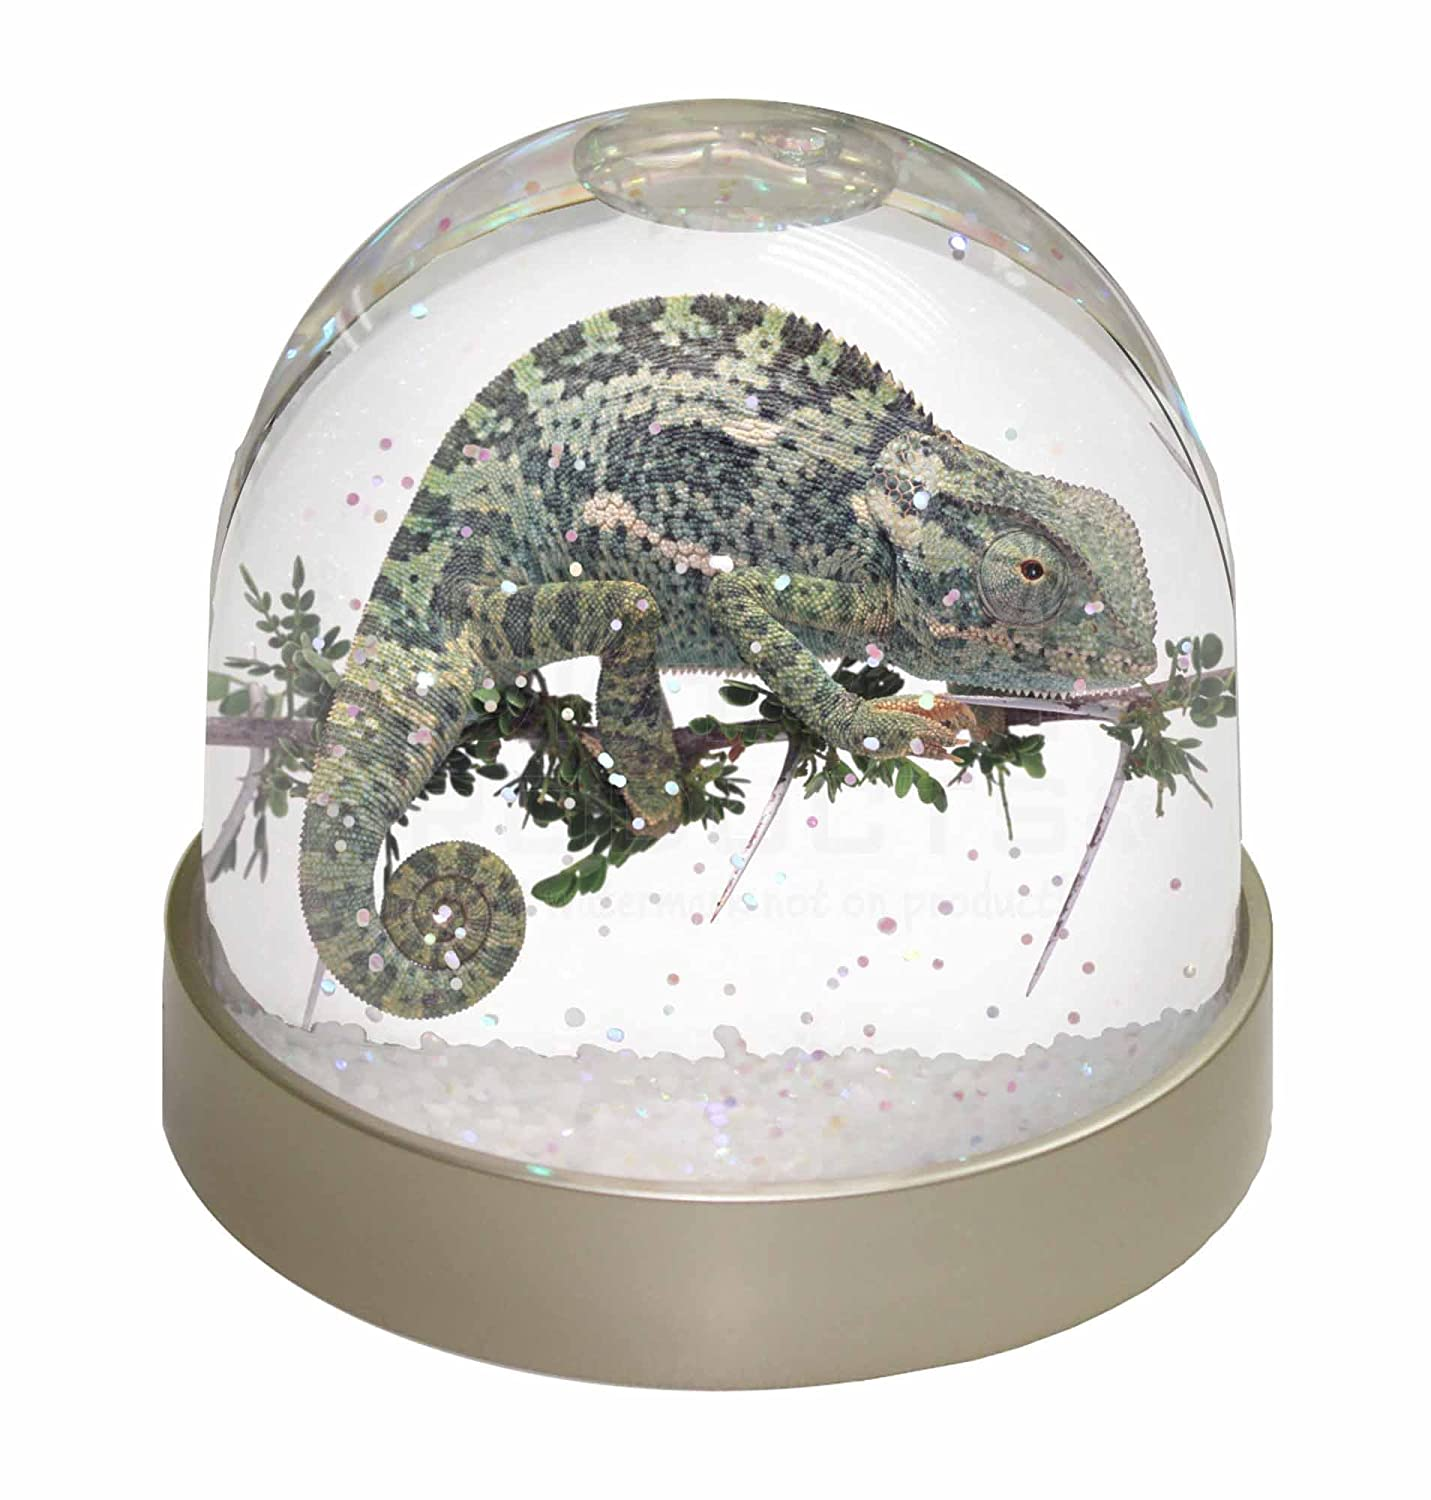 Advanta Chameleon Lizard Photo Snow Globe Waterball Stocking Filler Gift, Multi-Colour, 9.2 x 9.2 x 8 cm Advanta Products AR-L5GL